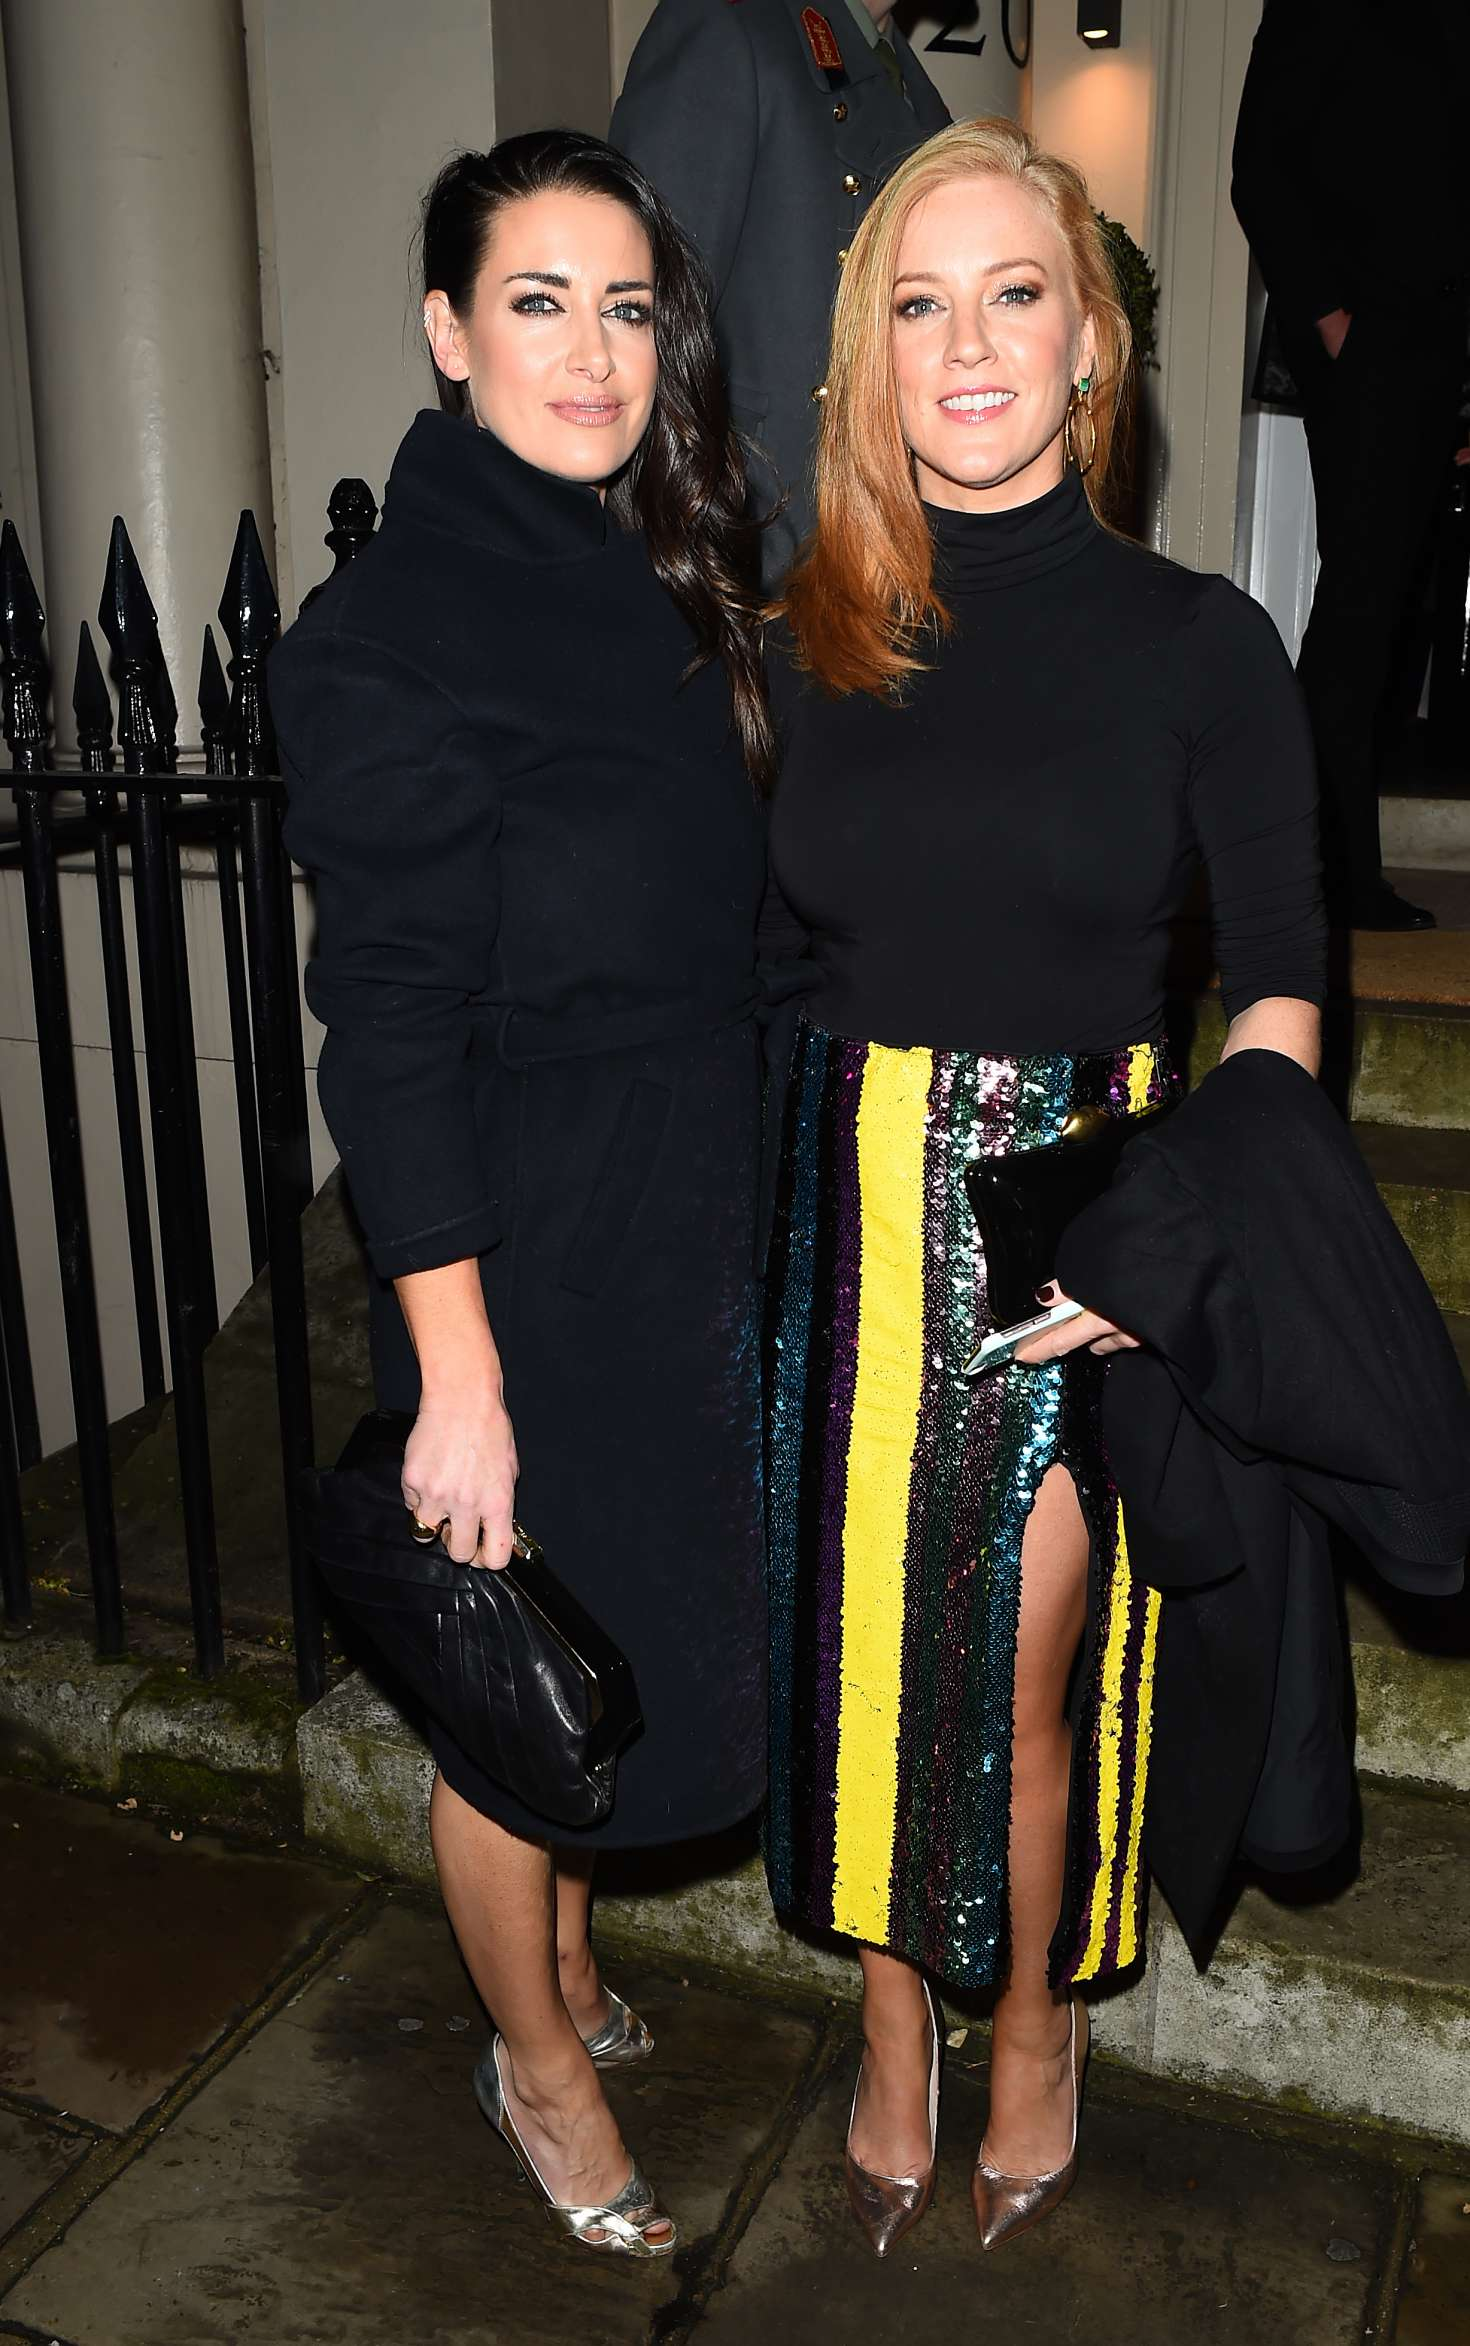 Kirsty Gallacher and Sarah-Jane Mee - Evgeny Lebedev Hosts a Lavish Christmas Party in London